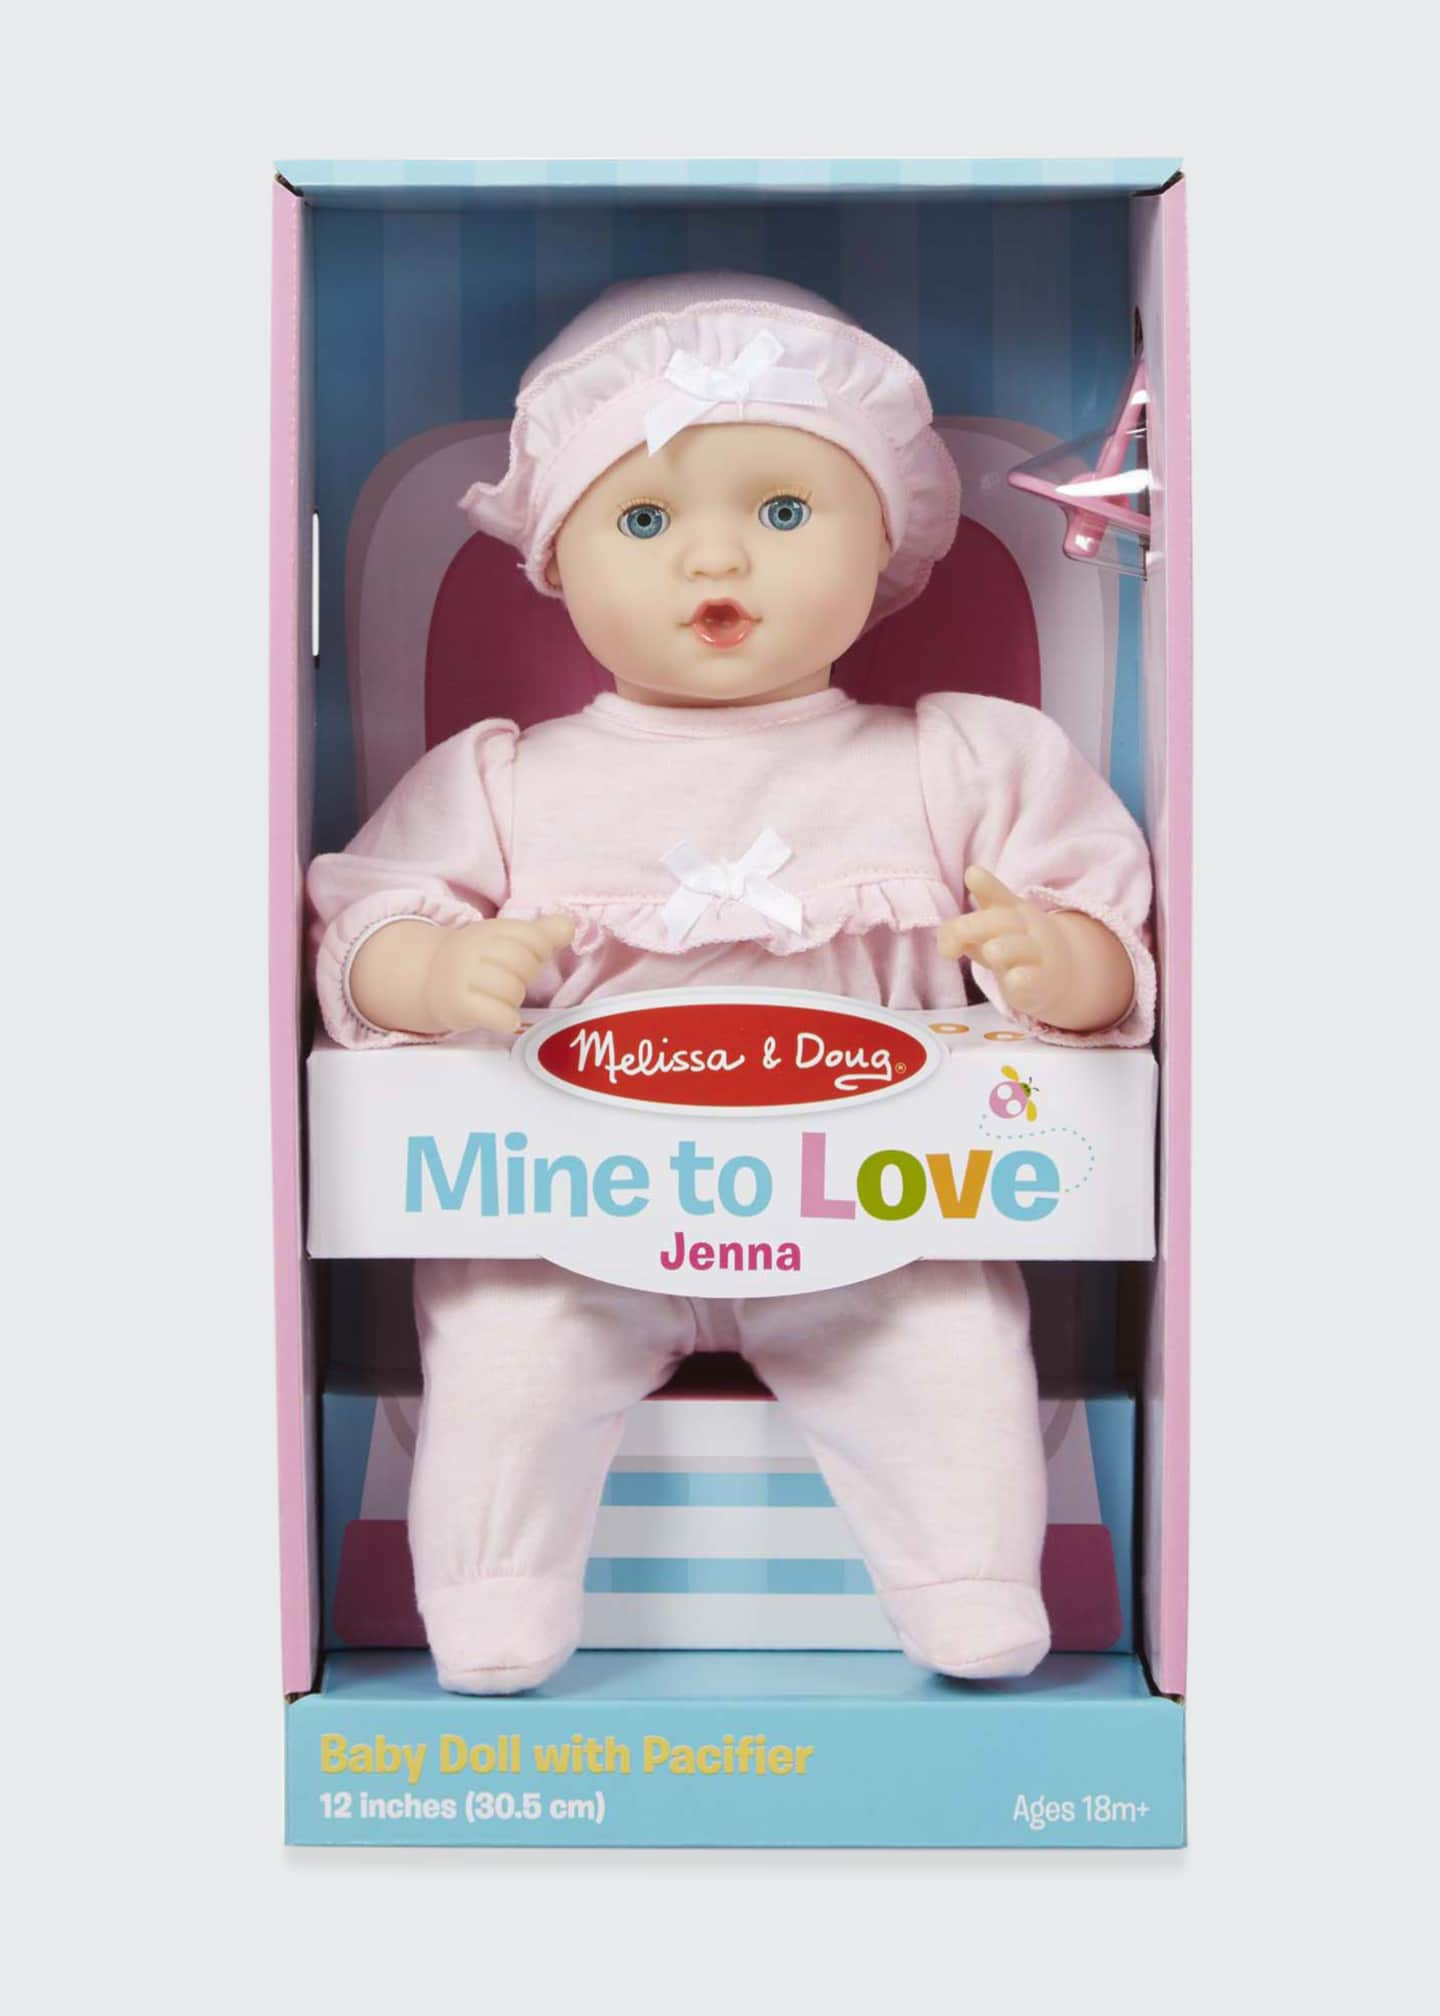 Image 2 of 3: Mine to Love Jenna Baby Doll